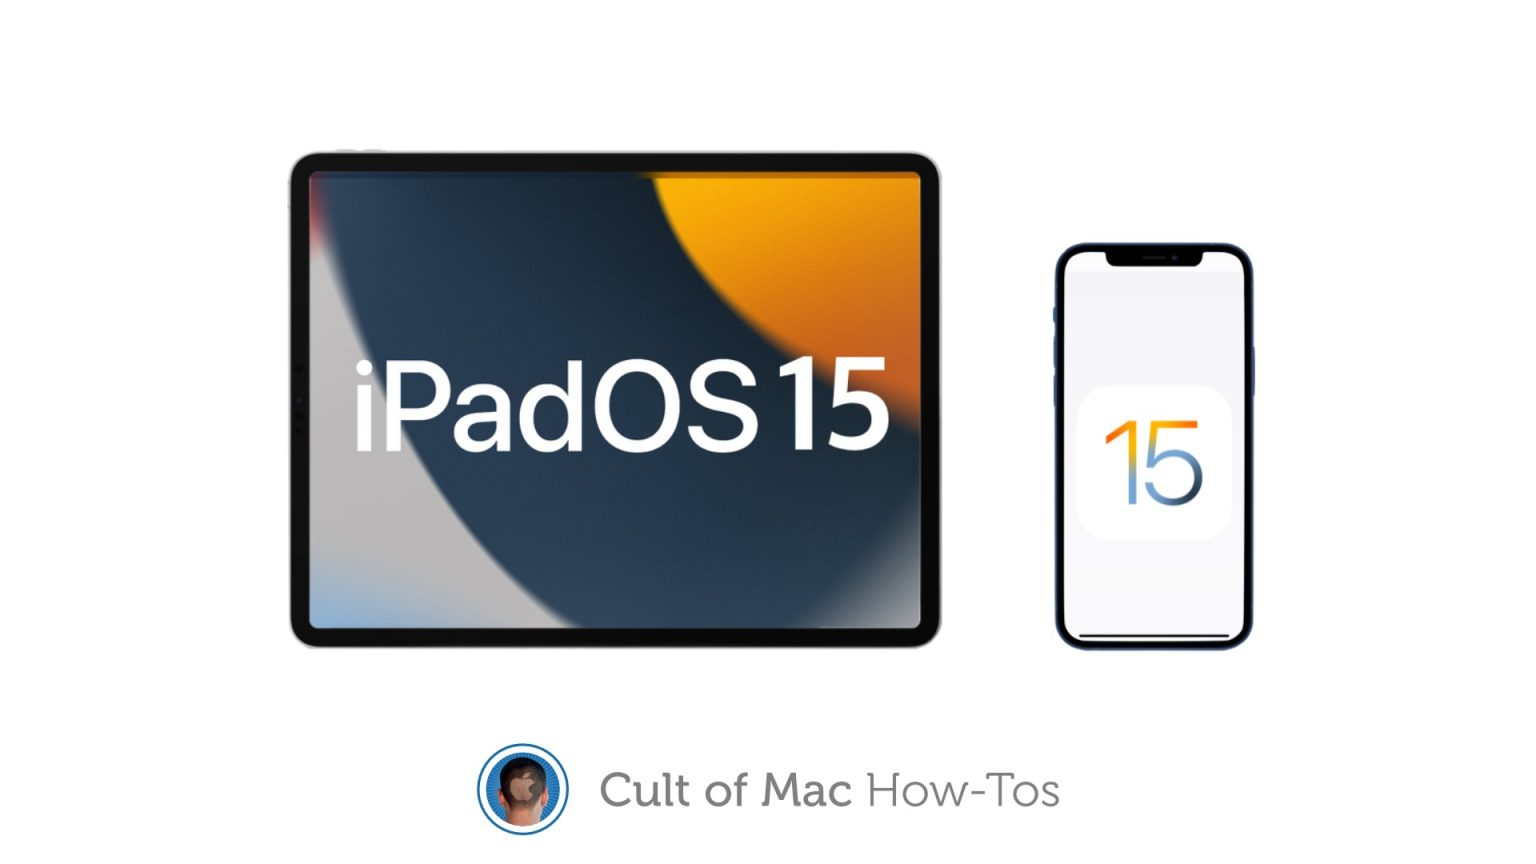 How to get the iOS 15 and iPadOS 15 public betas today